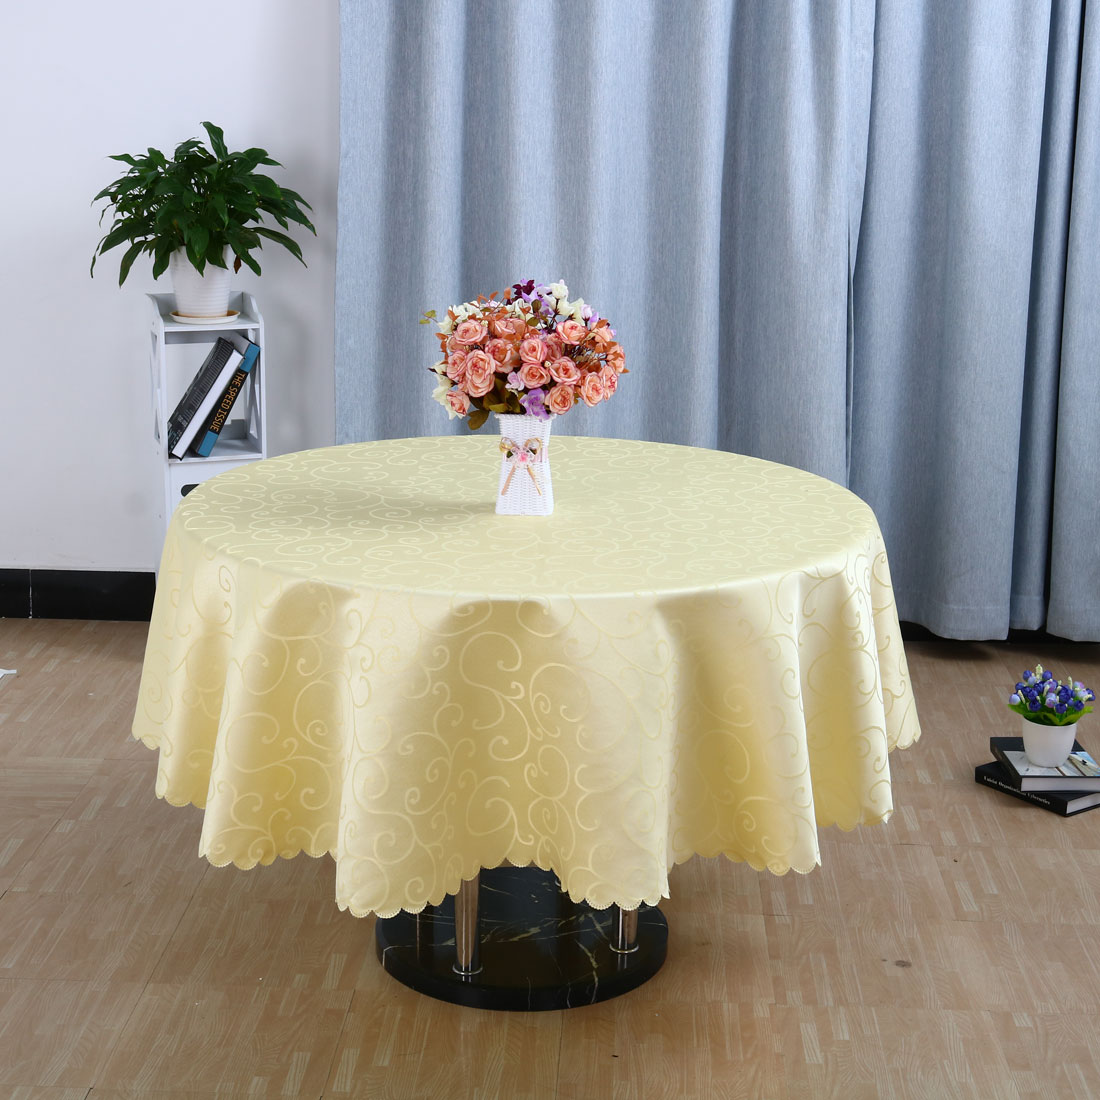 "Polyester Round Flower Pattern Tablecloth Water Stain Resistant Yellow 71"" Dia - image 2 of 4"